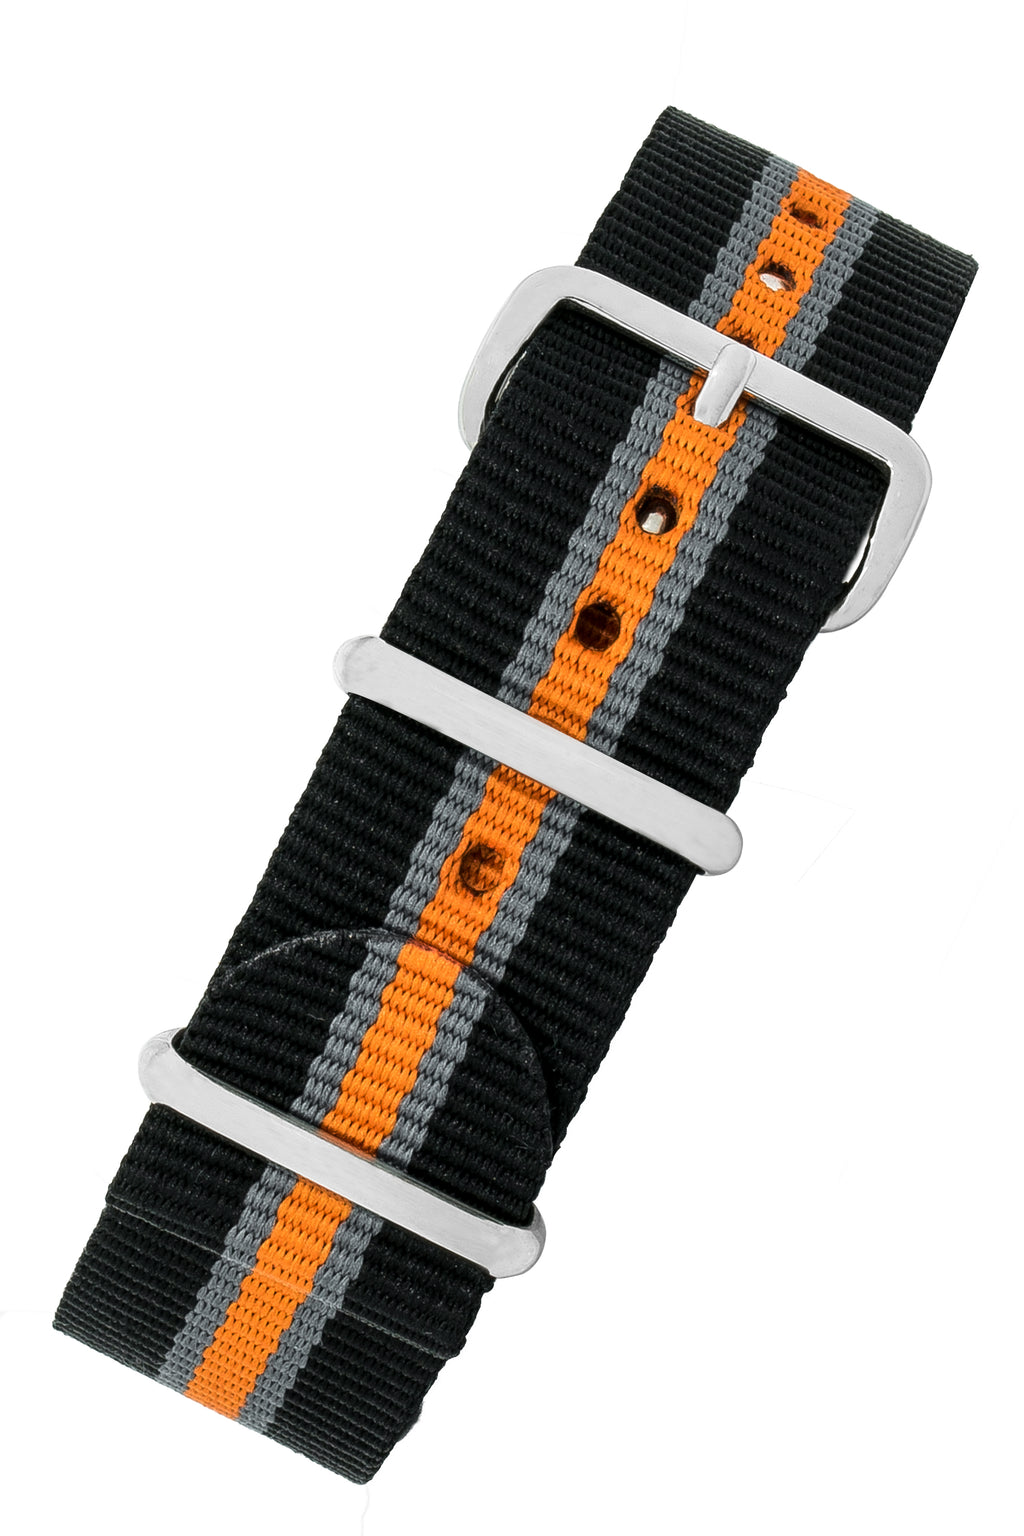 Nato Watch Strap in BLACK/GREY/ORANGE with Polished Buckle and Keepers